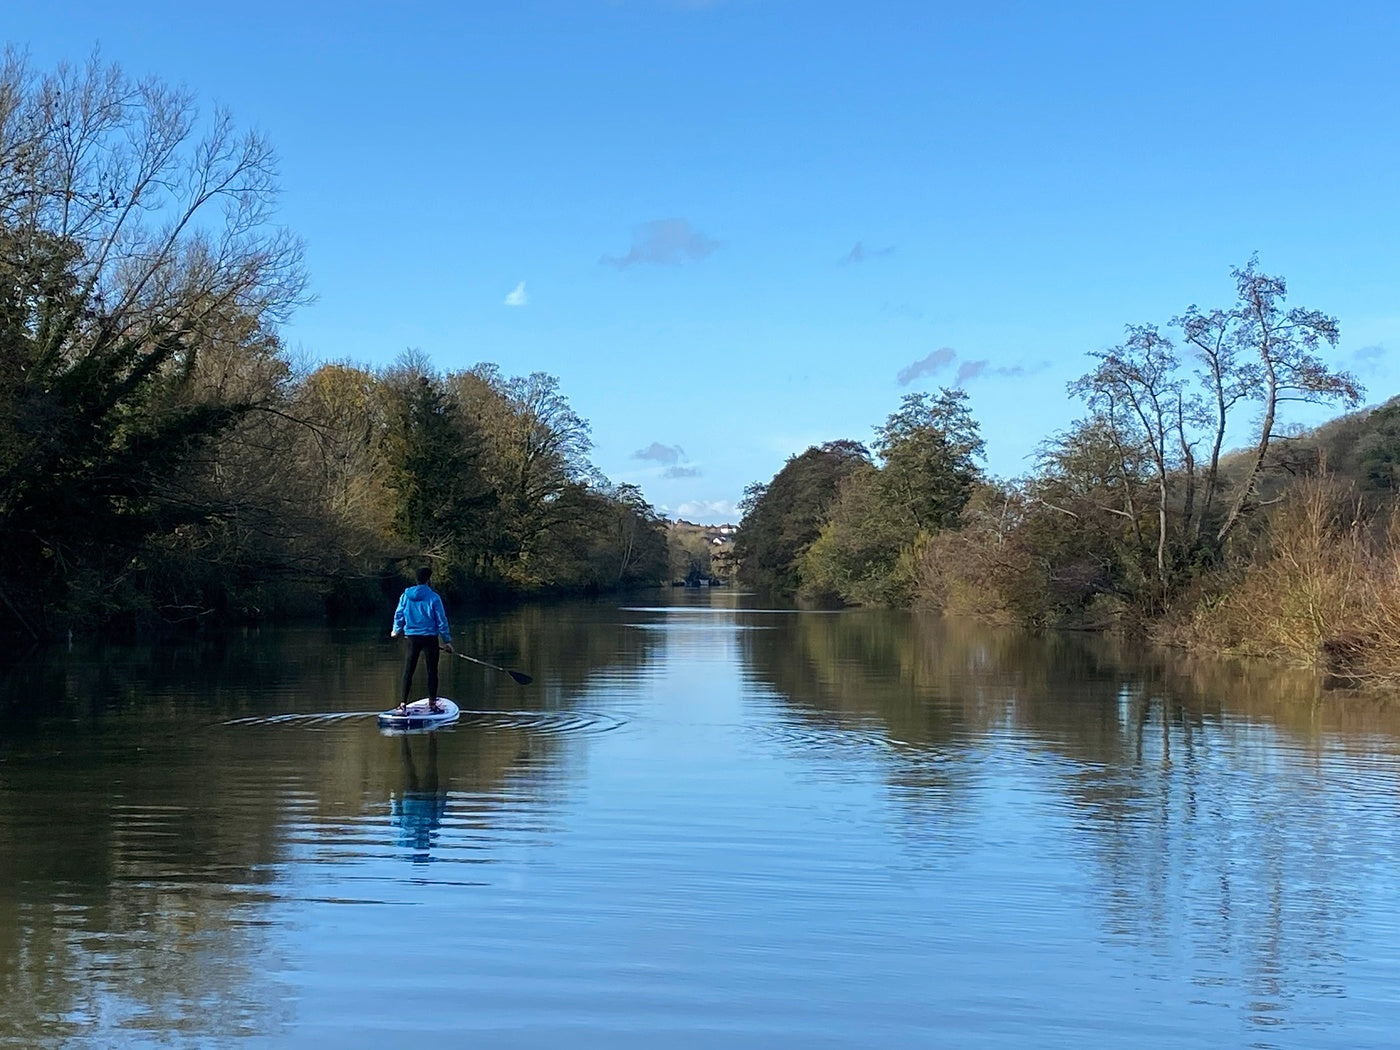 Phil Williams exploring the rivers and waterways near his home on a SUP